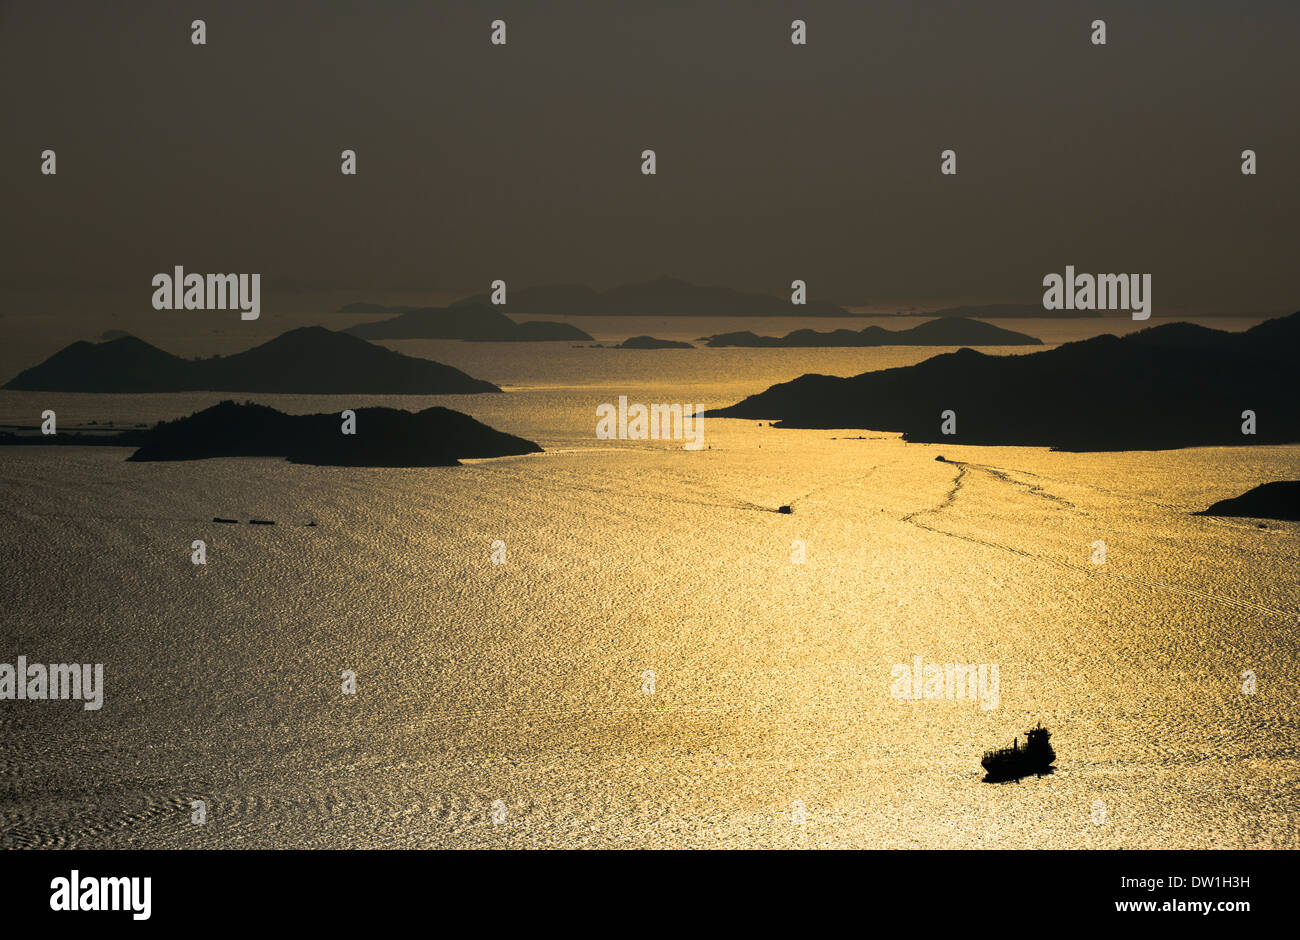 A view of the South China Sea and Lantau island as seen from the High West peak on Hong Kong island. - Stock Image